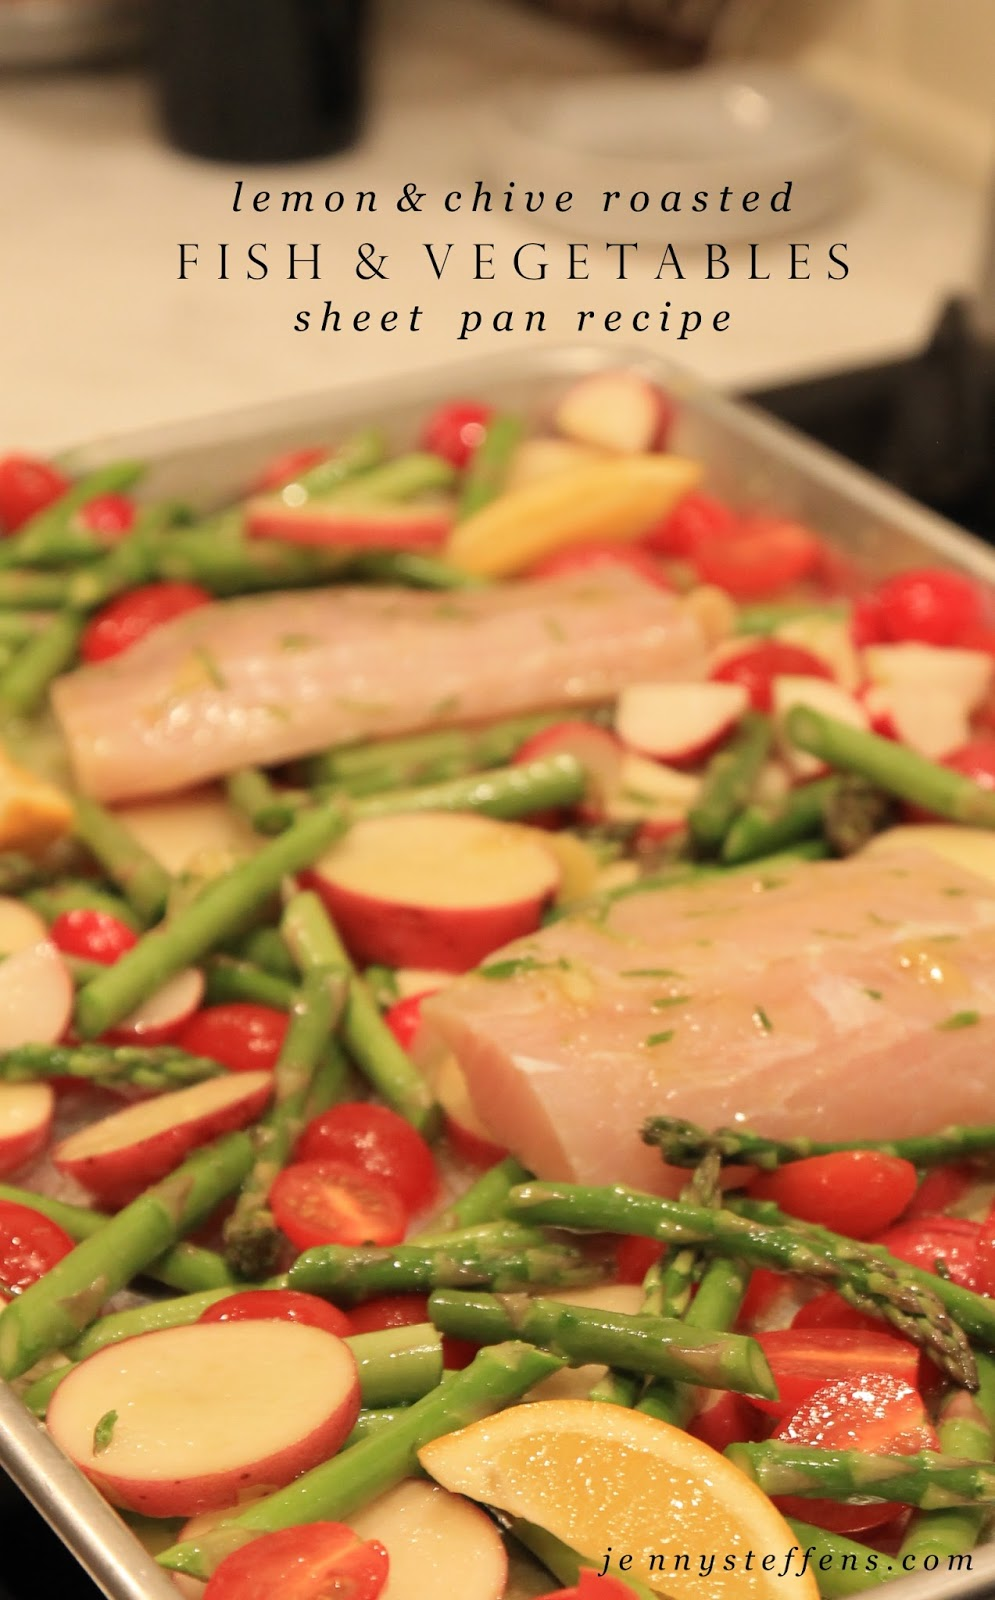 Jenny steffens hobick lemon chive roasted fish for Fish and vegetable recipes